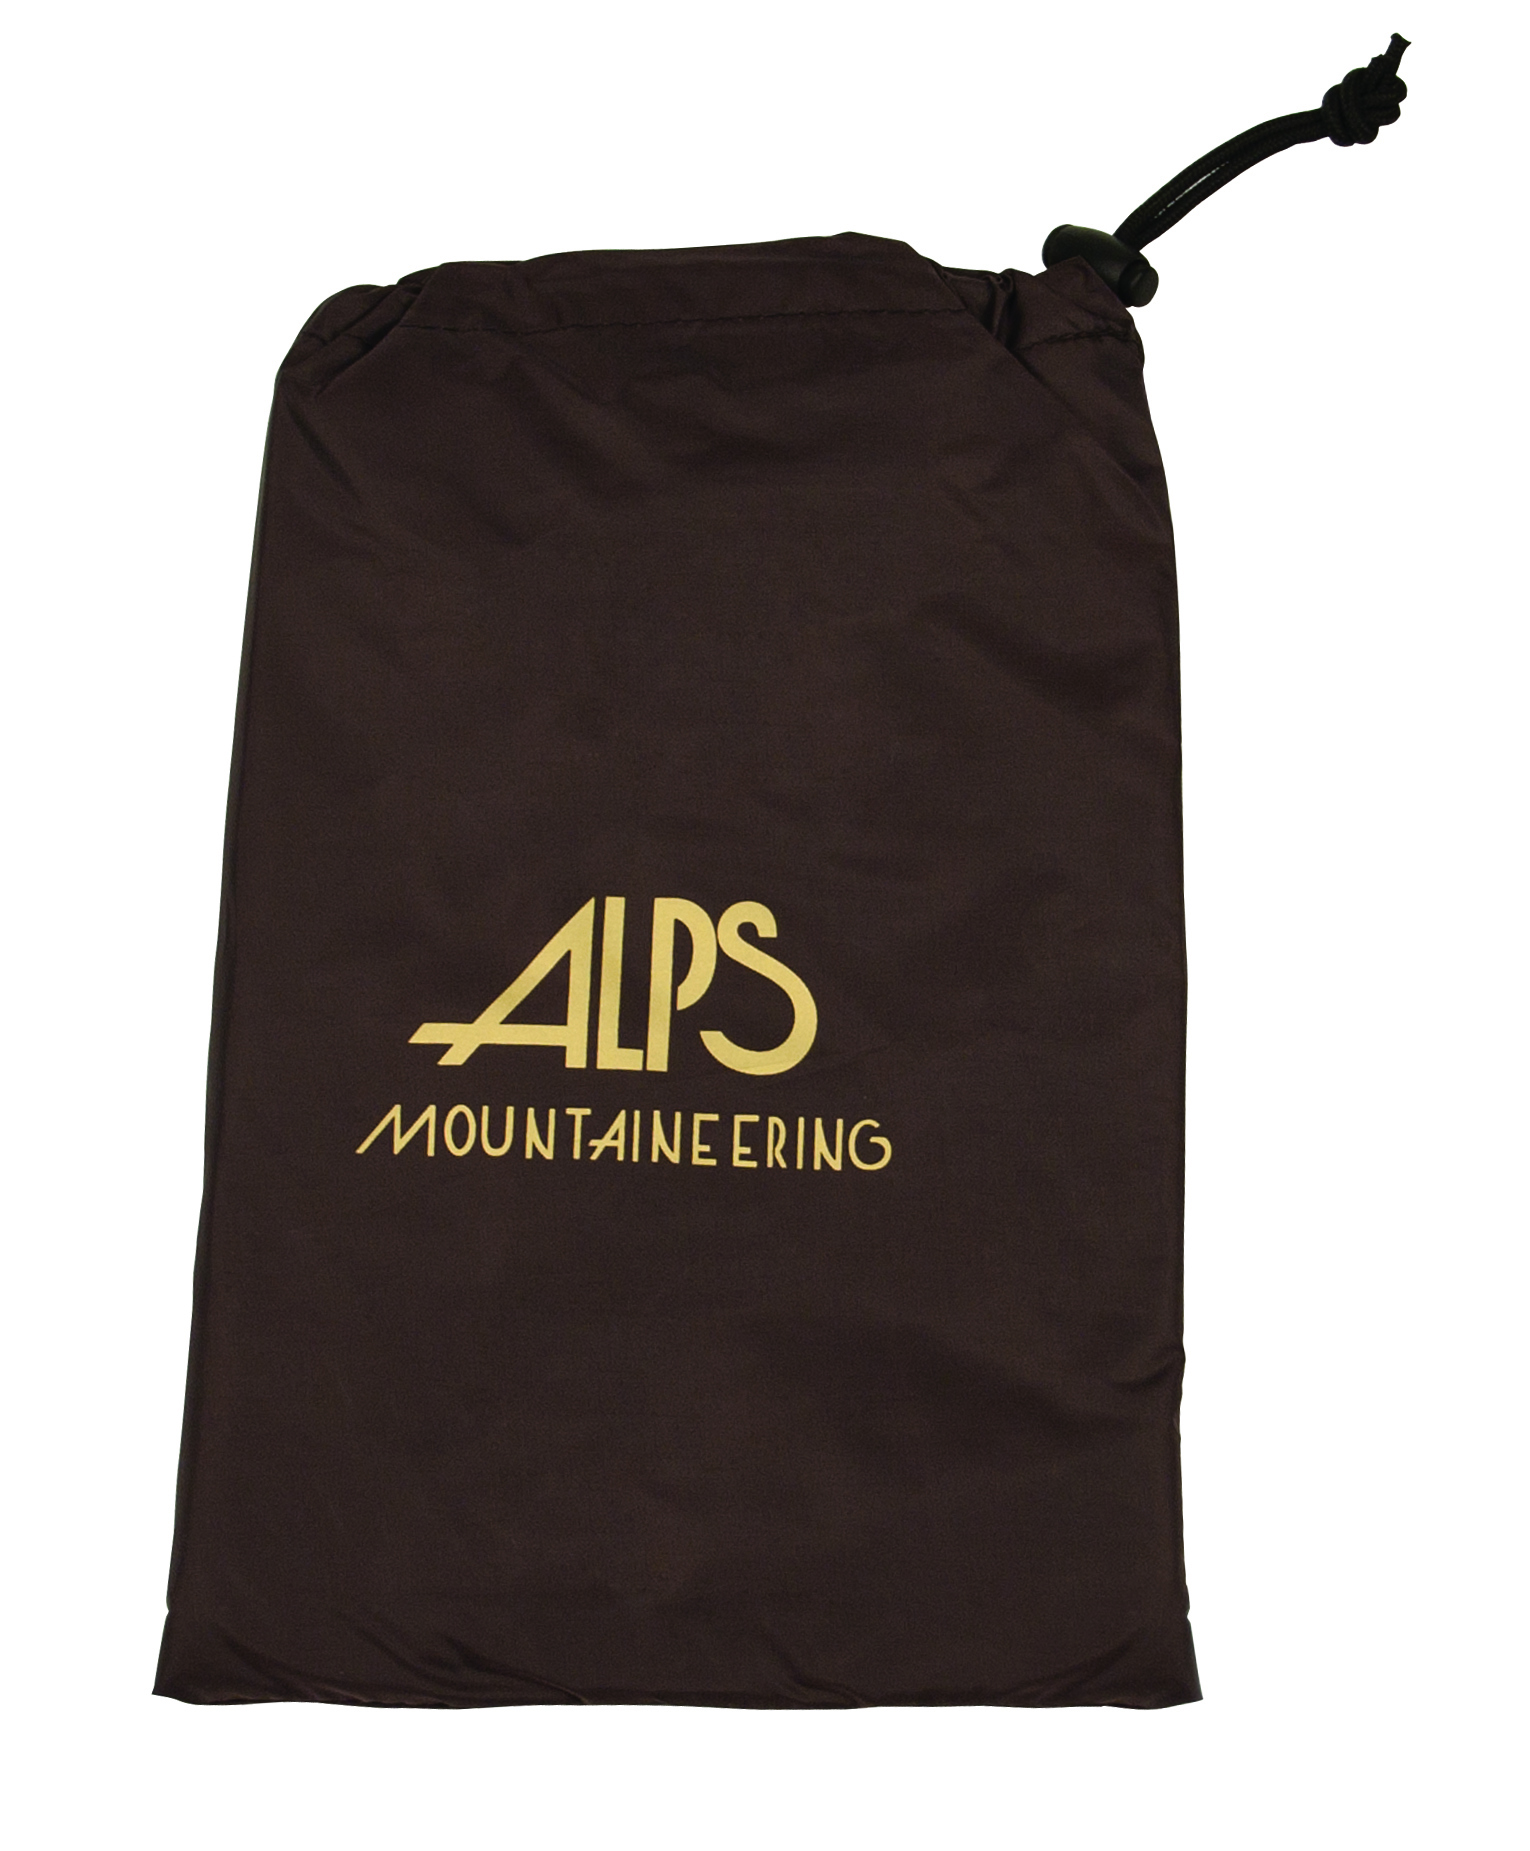 ALPS Mountaineering Mystique 2 Floor Saver